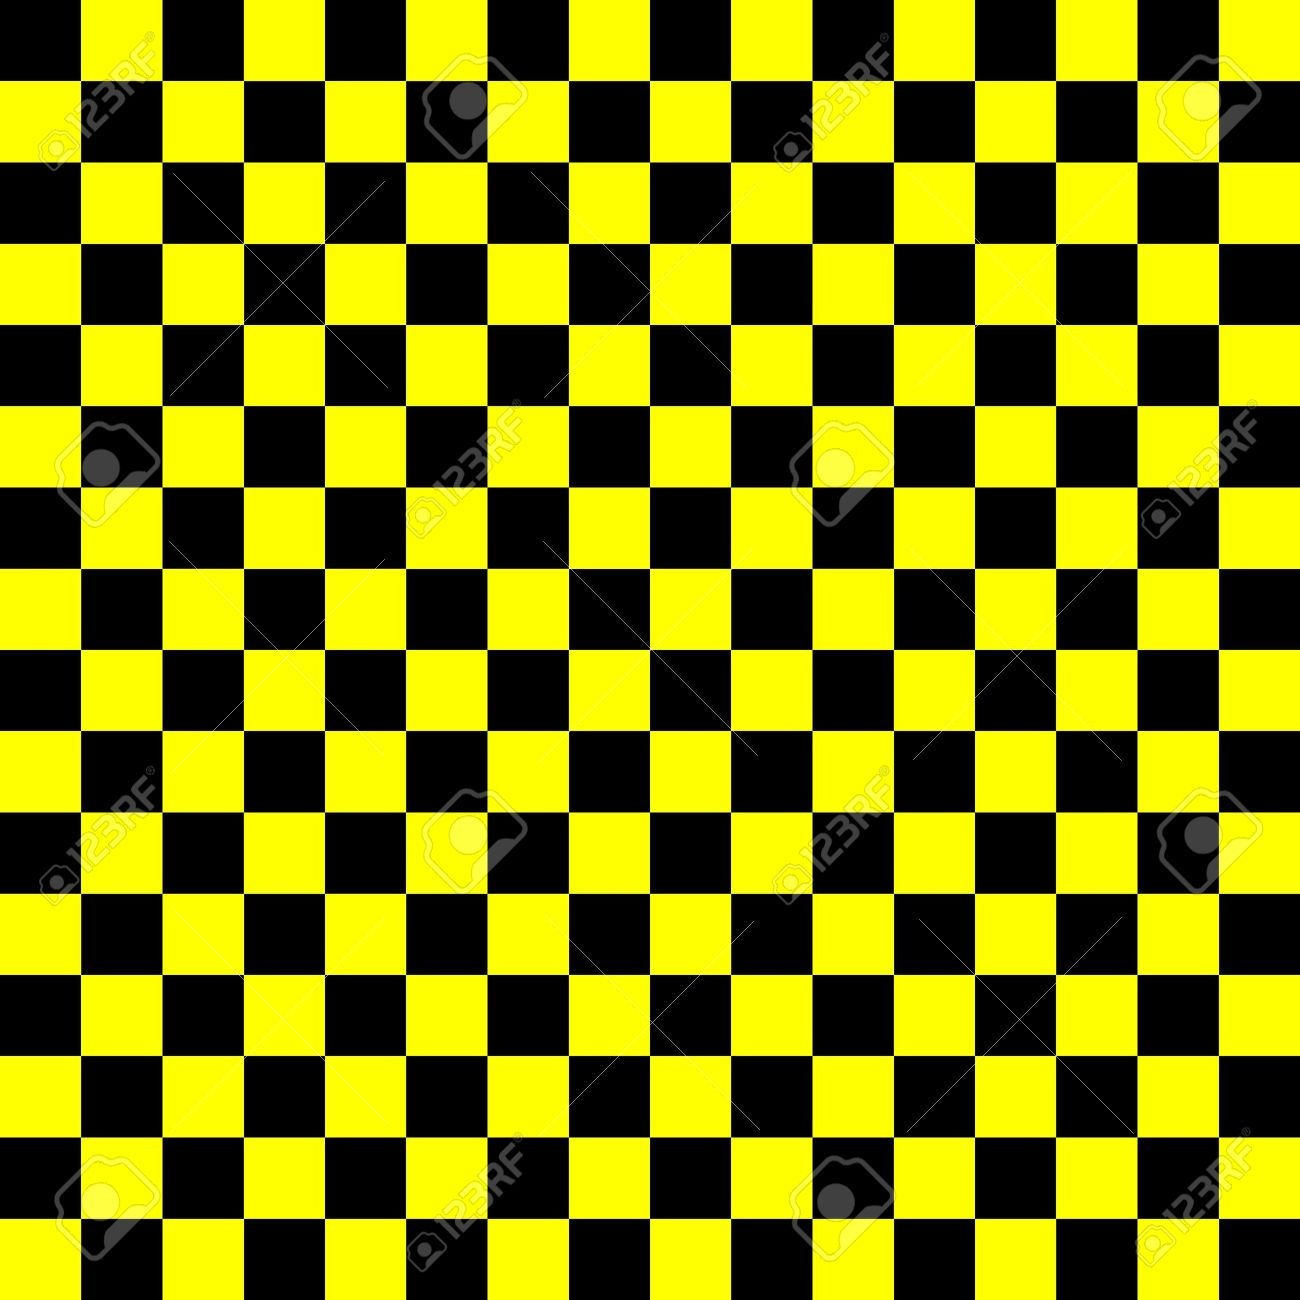 1300x1300 - Yellow and Black 14